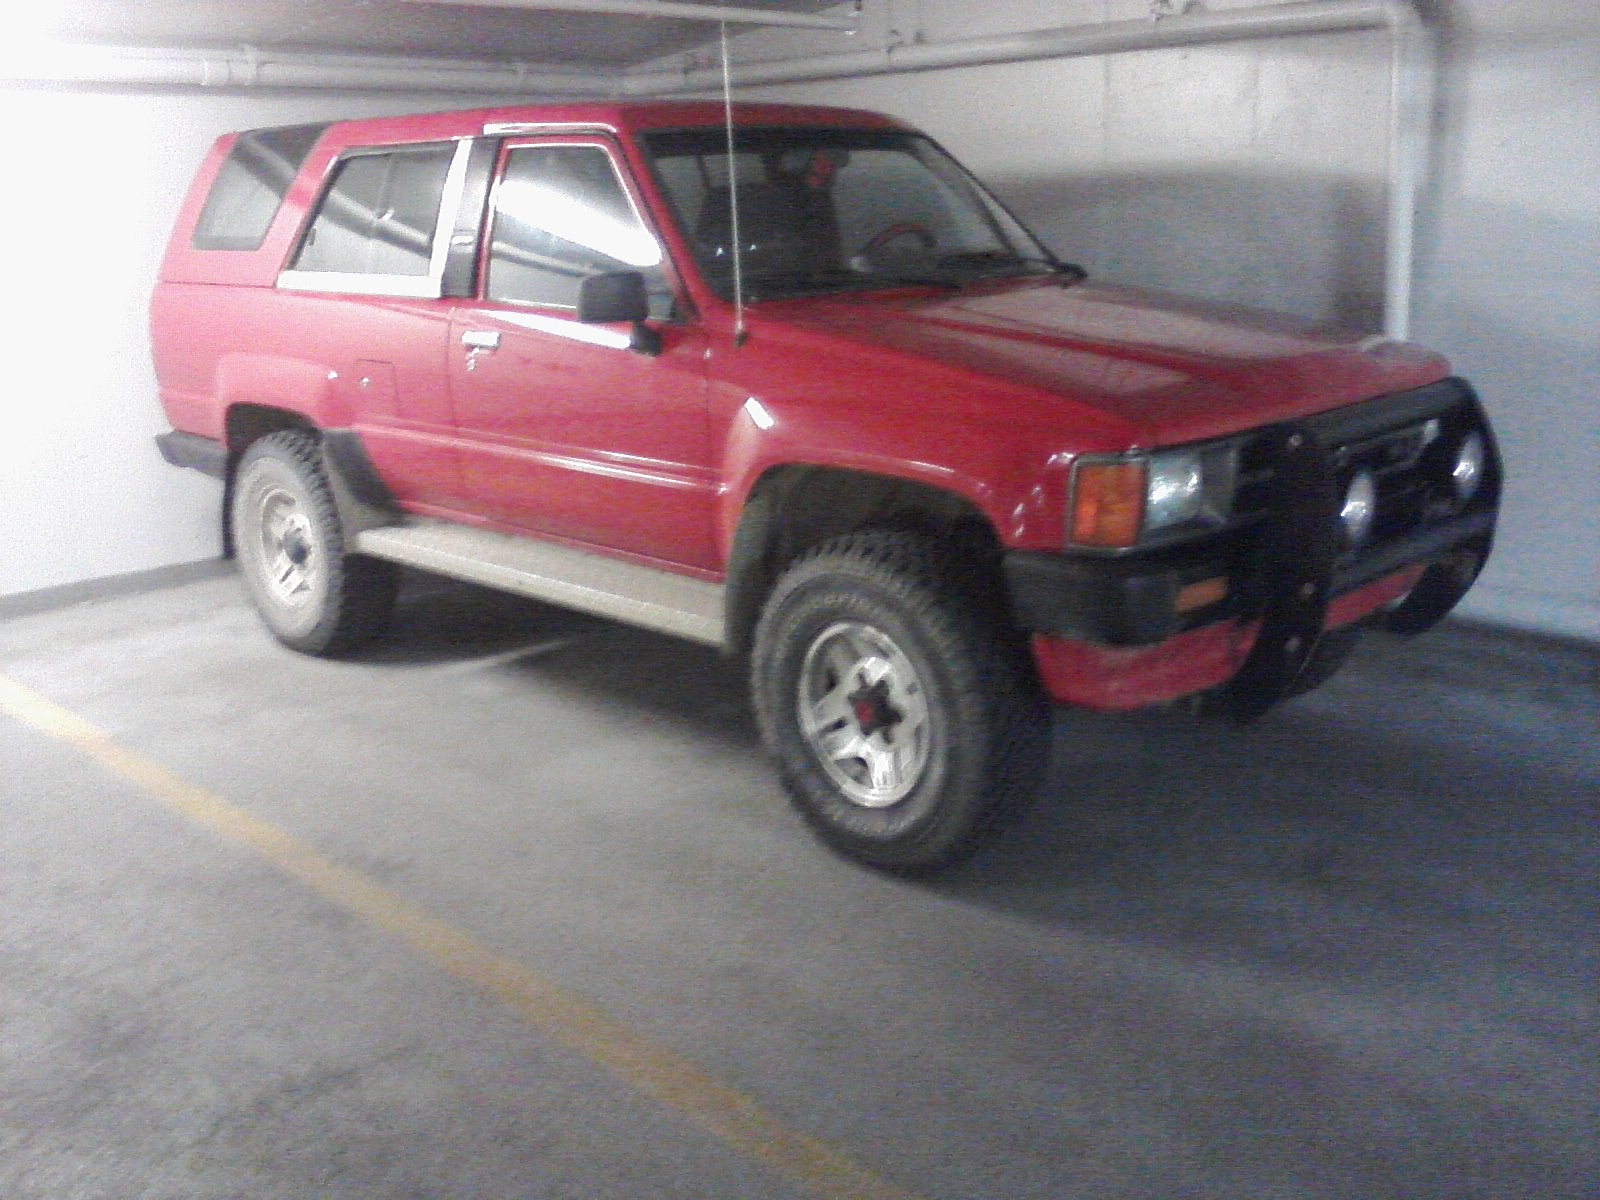 RPM's Do it Yourself Blog: Toyota DIY 22re and 3vze